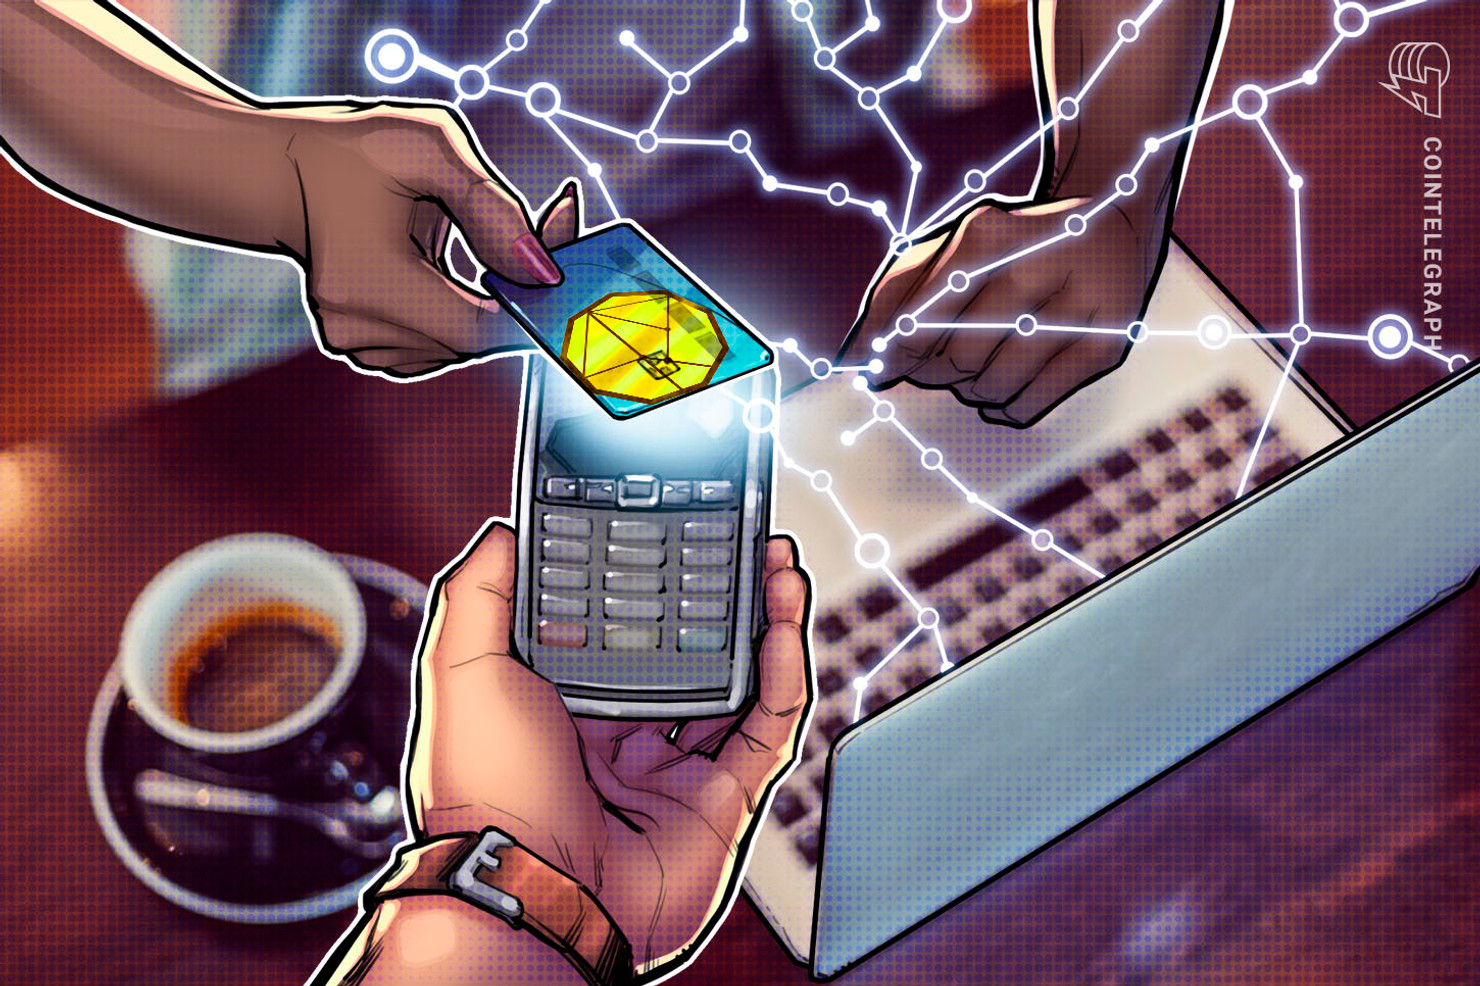 ShapeShift Enables US-Based Customers to Buy Crypto With Debit Card